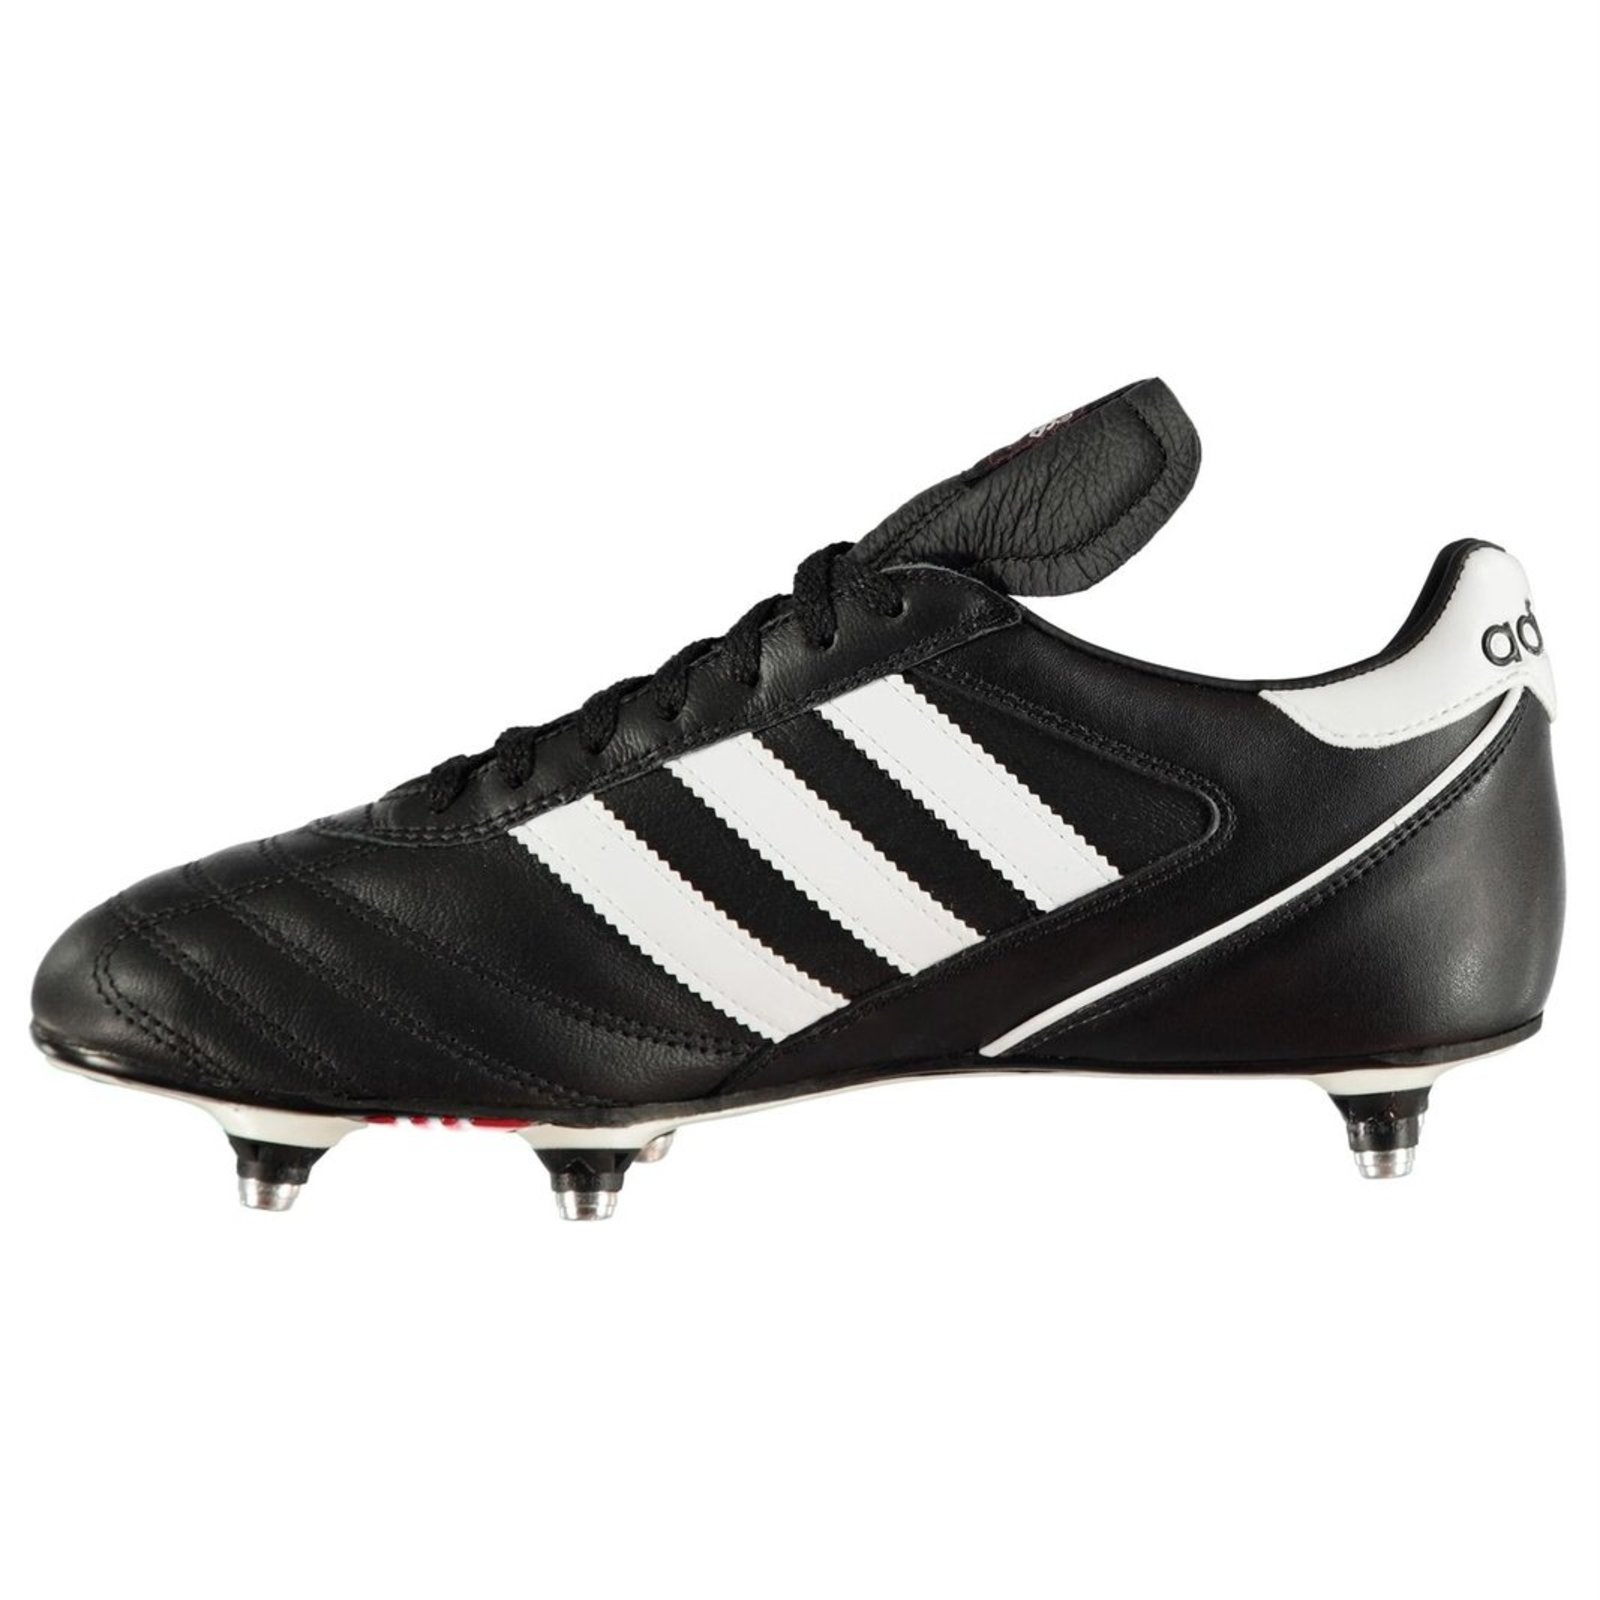 3c3c9e671 ... the best attitude 80b3c 1d21f adidas Mens Kaiser 5 Cup Soft Ground  Football Boots Studs Trainers